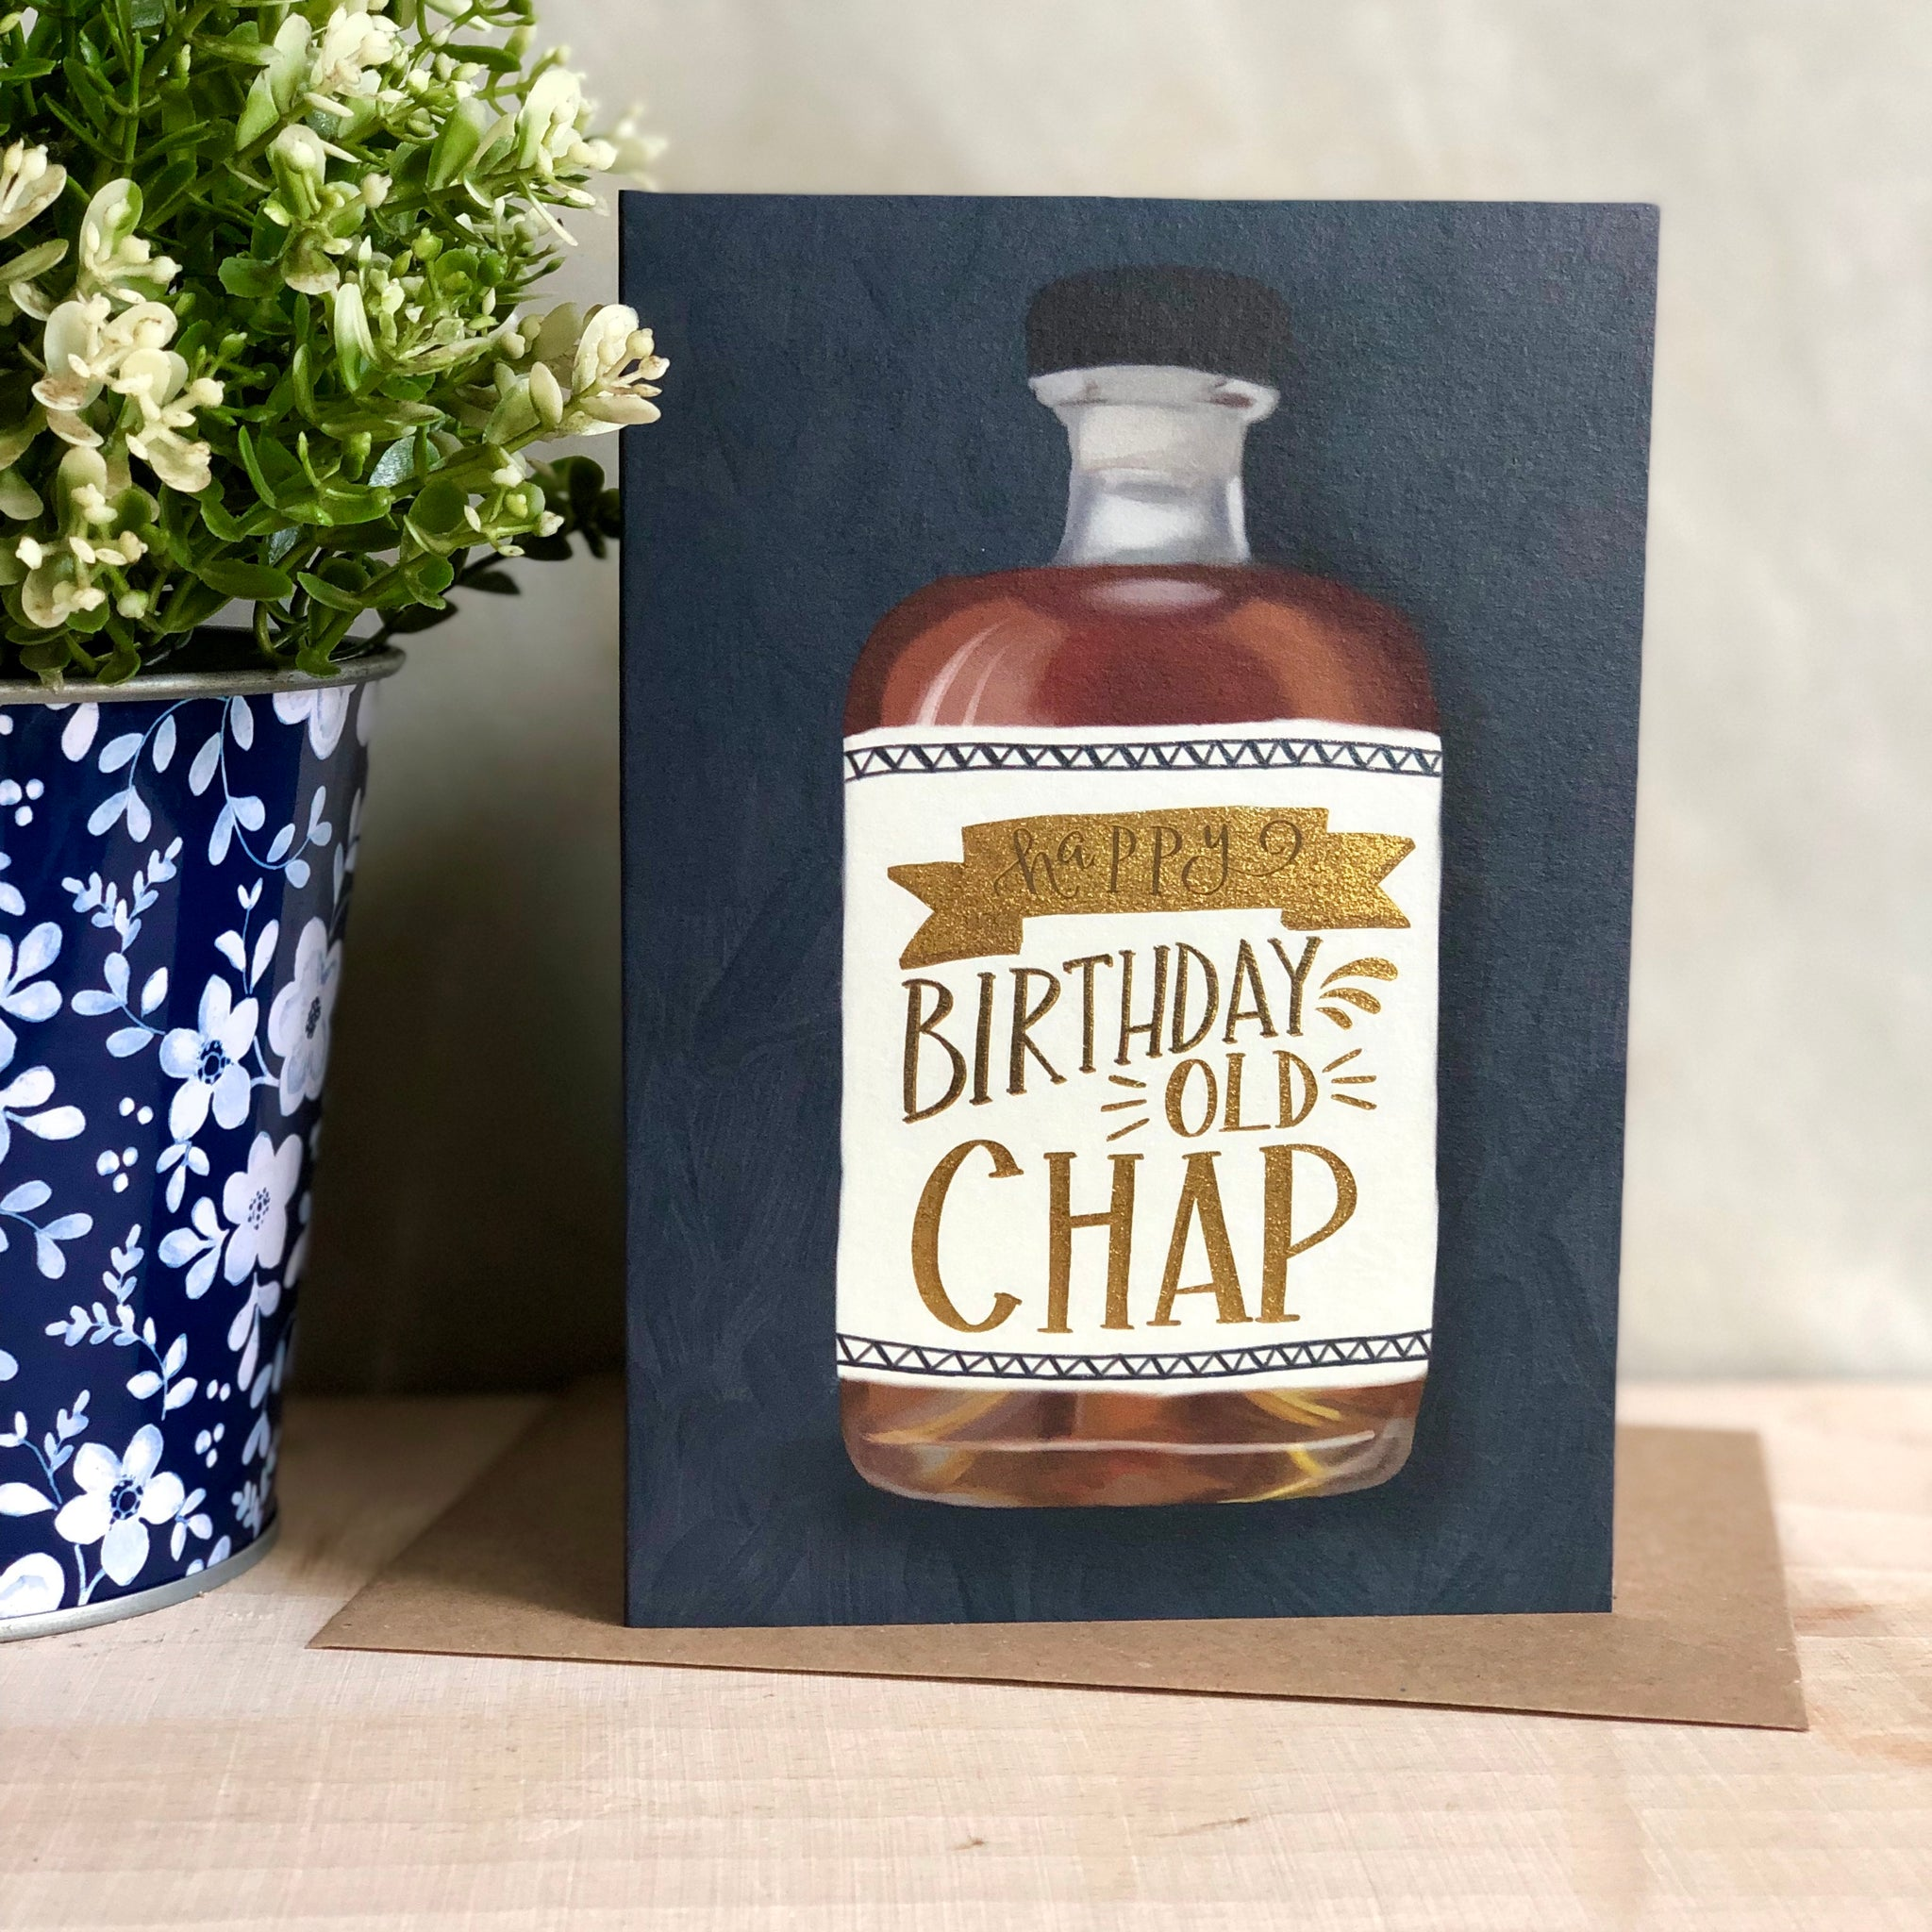 Happy birthday old chap foiled birthday card